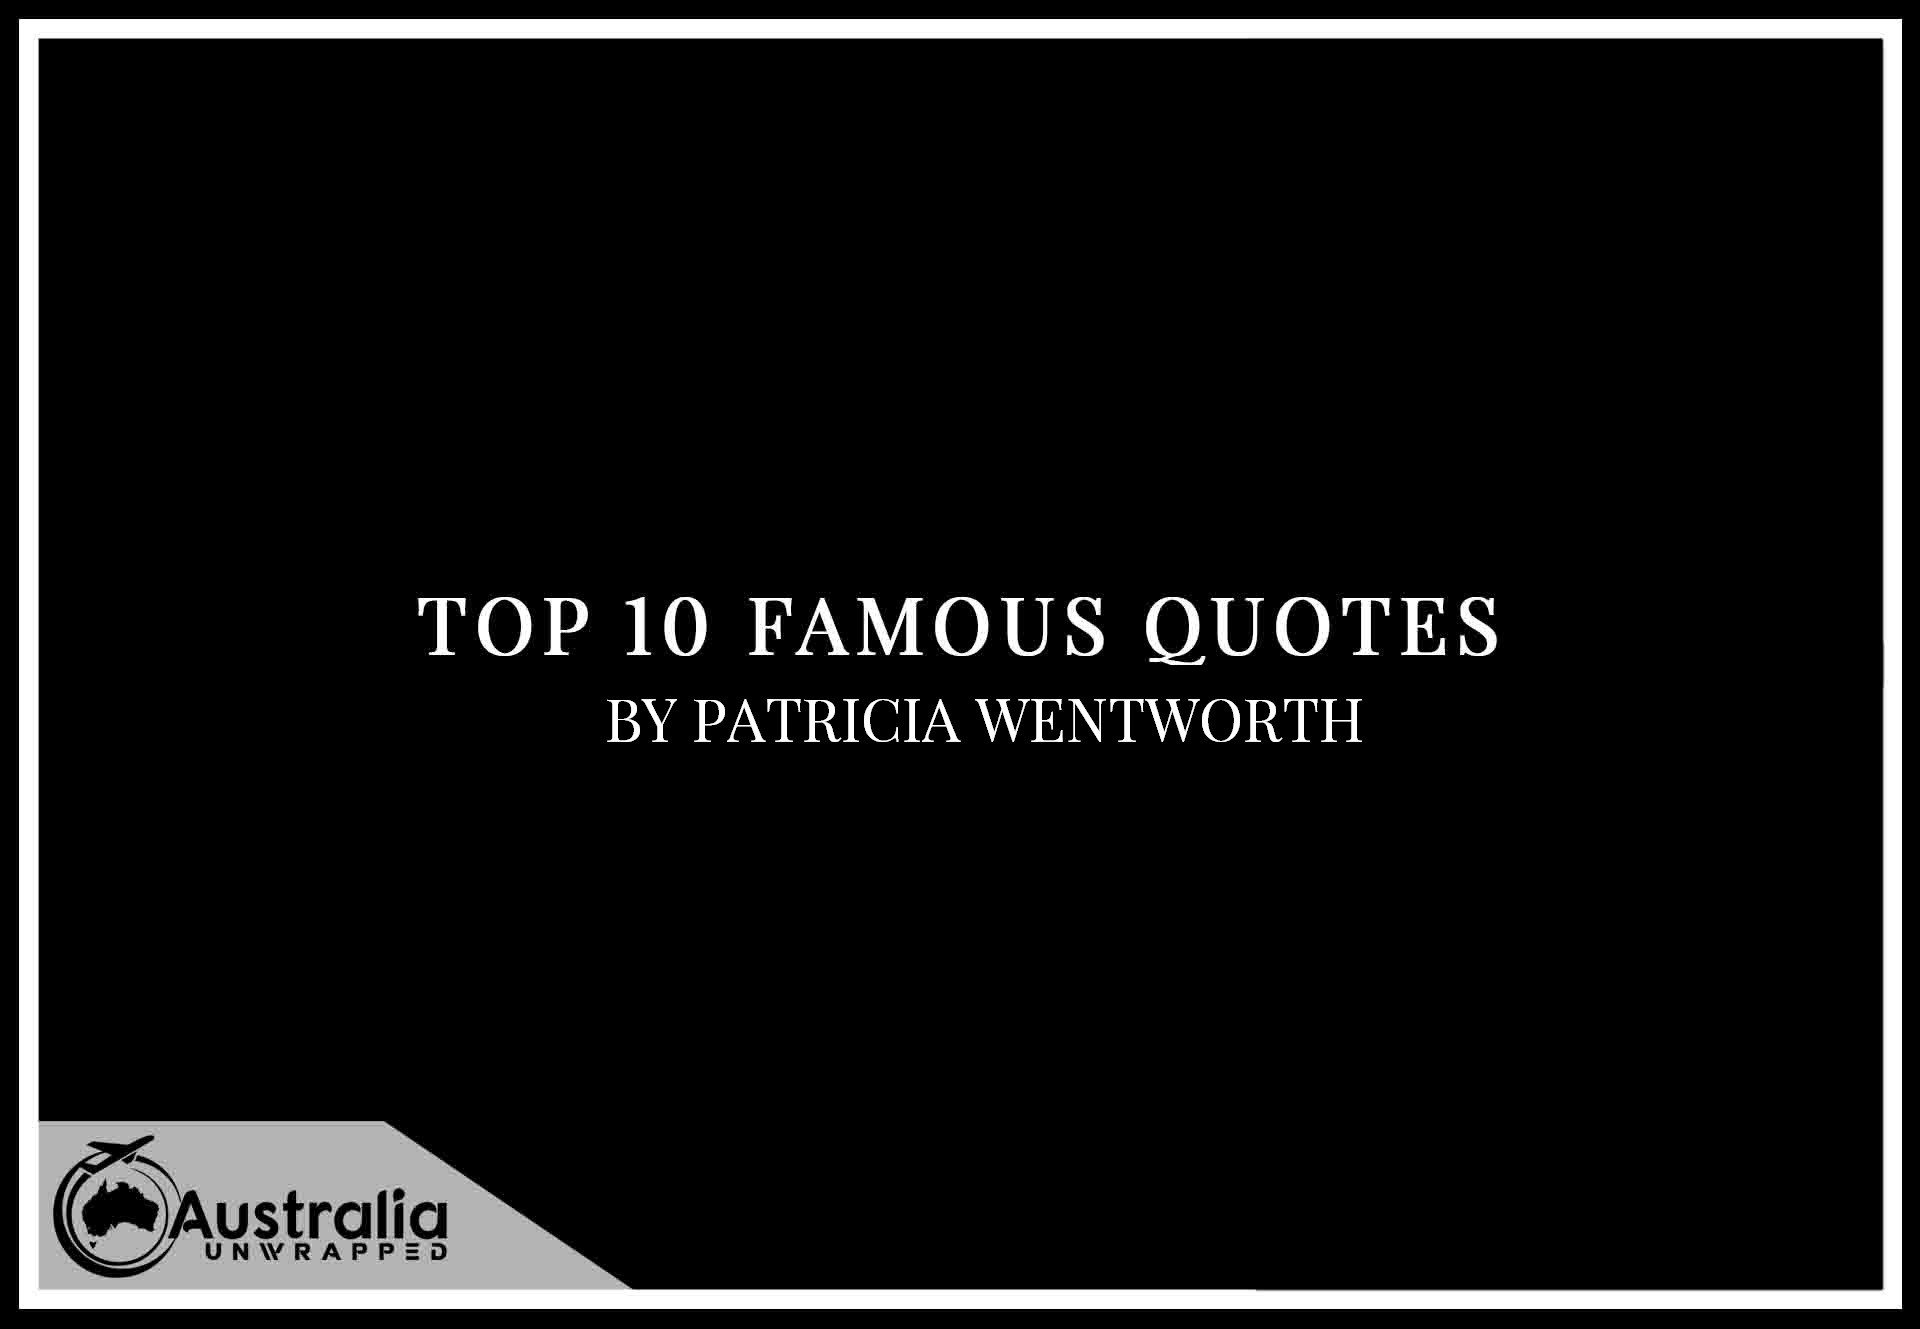 Top 10 Famous Quotes by Author Patricia Wentworth